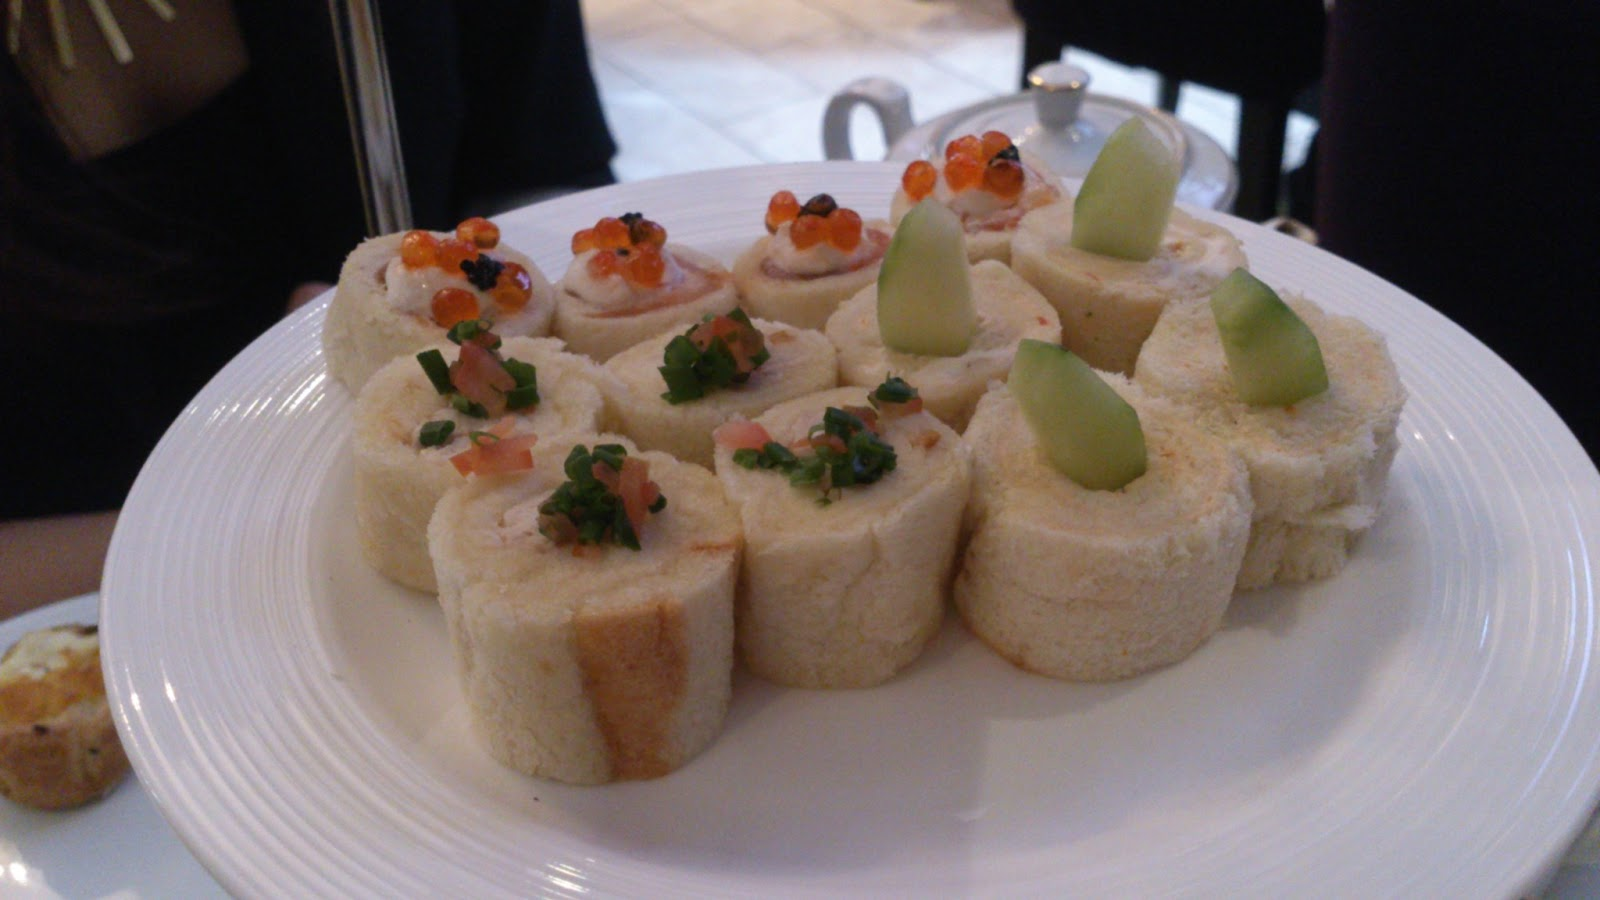 ... there were smoked salmon with salmon caviar cucumber with cream